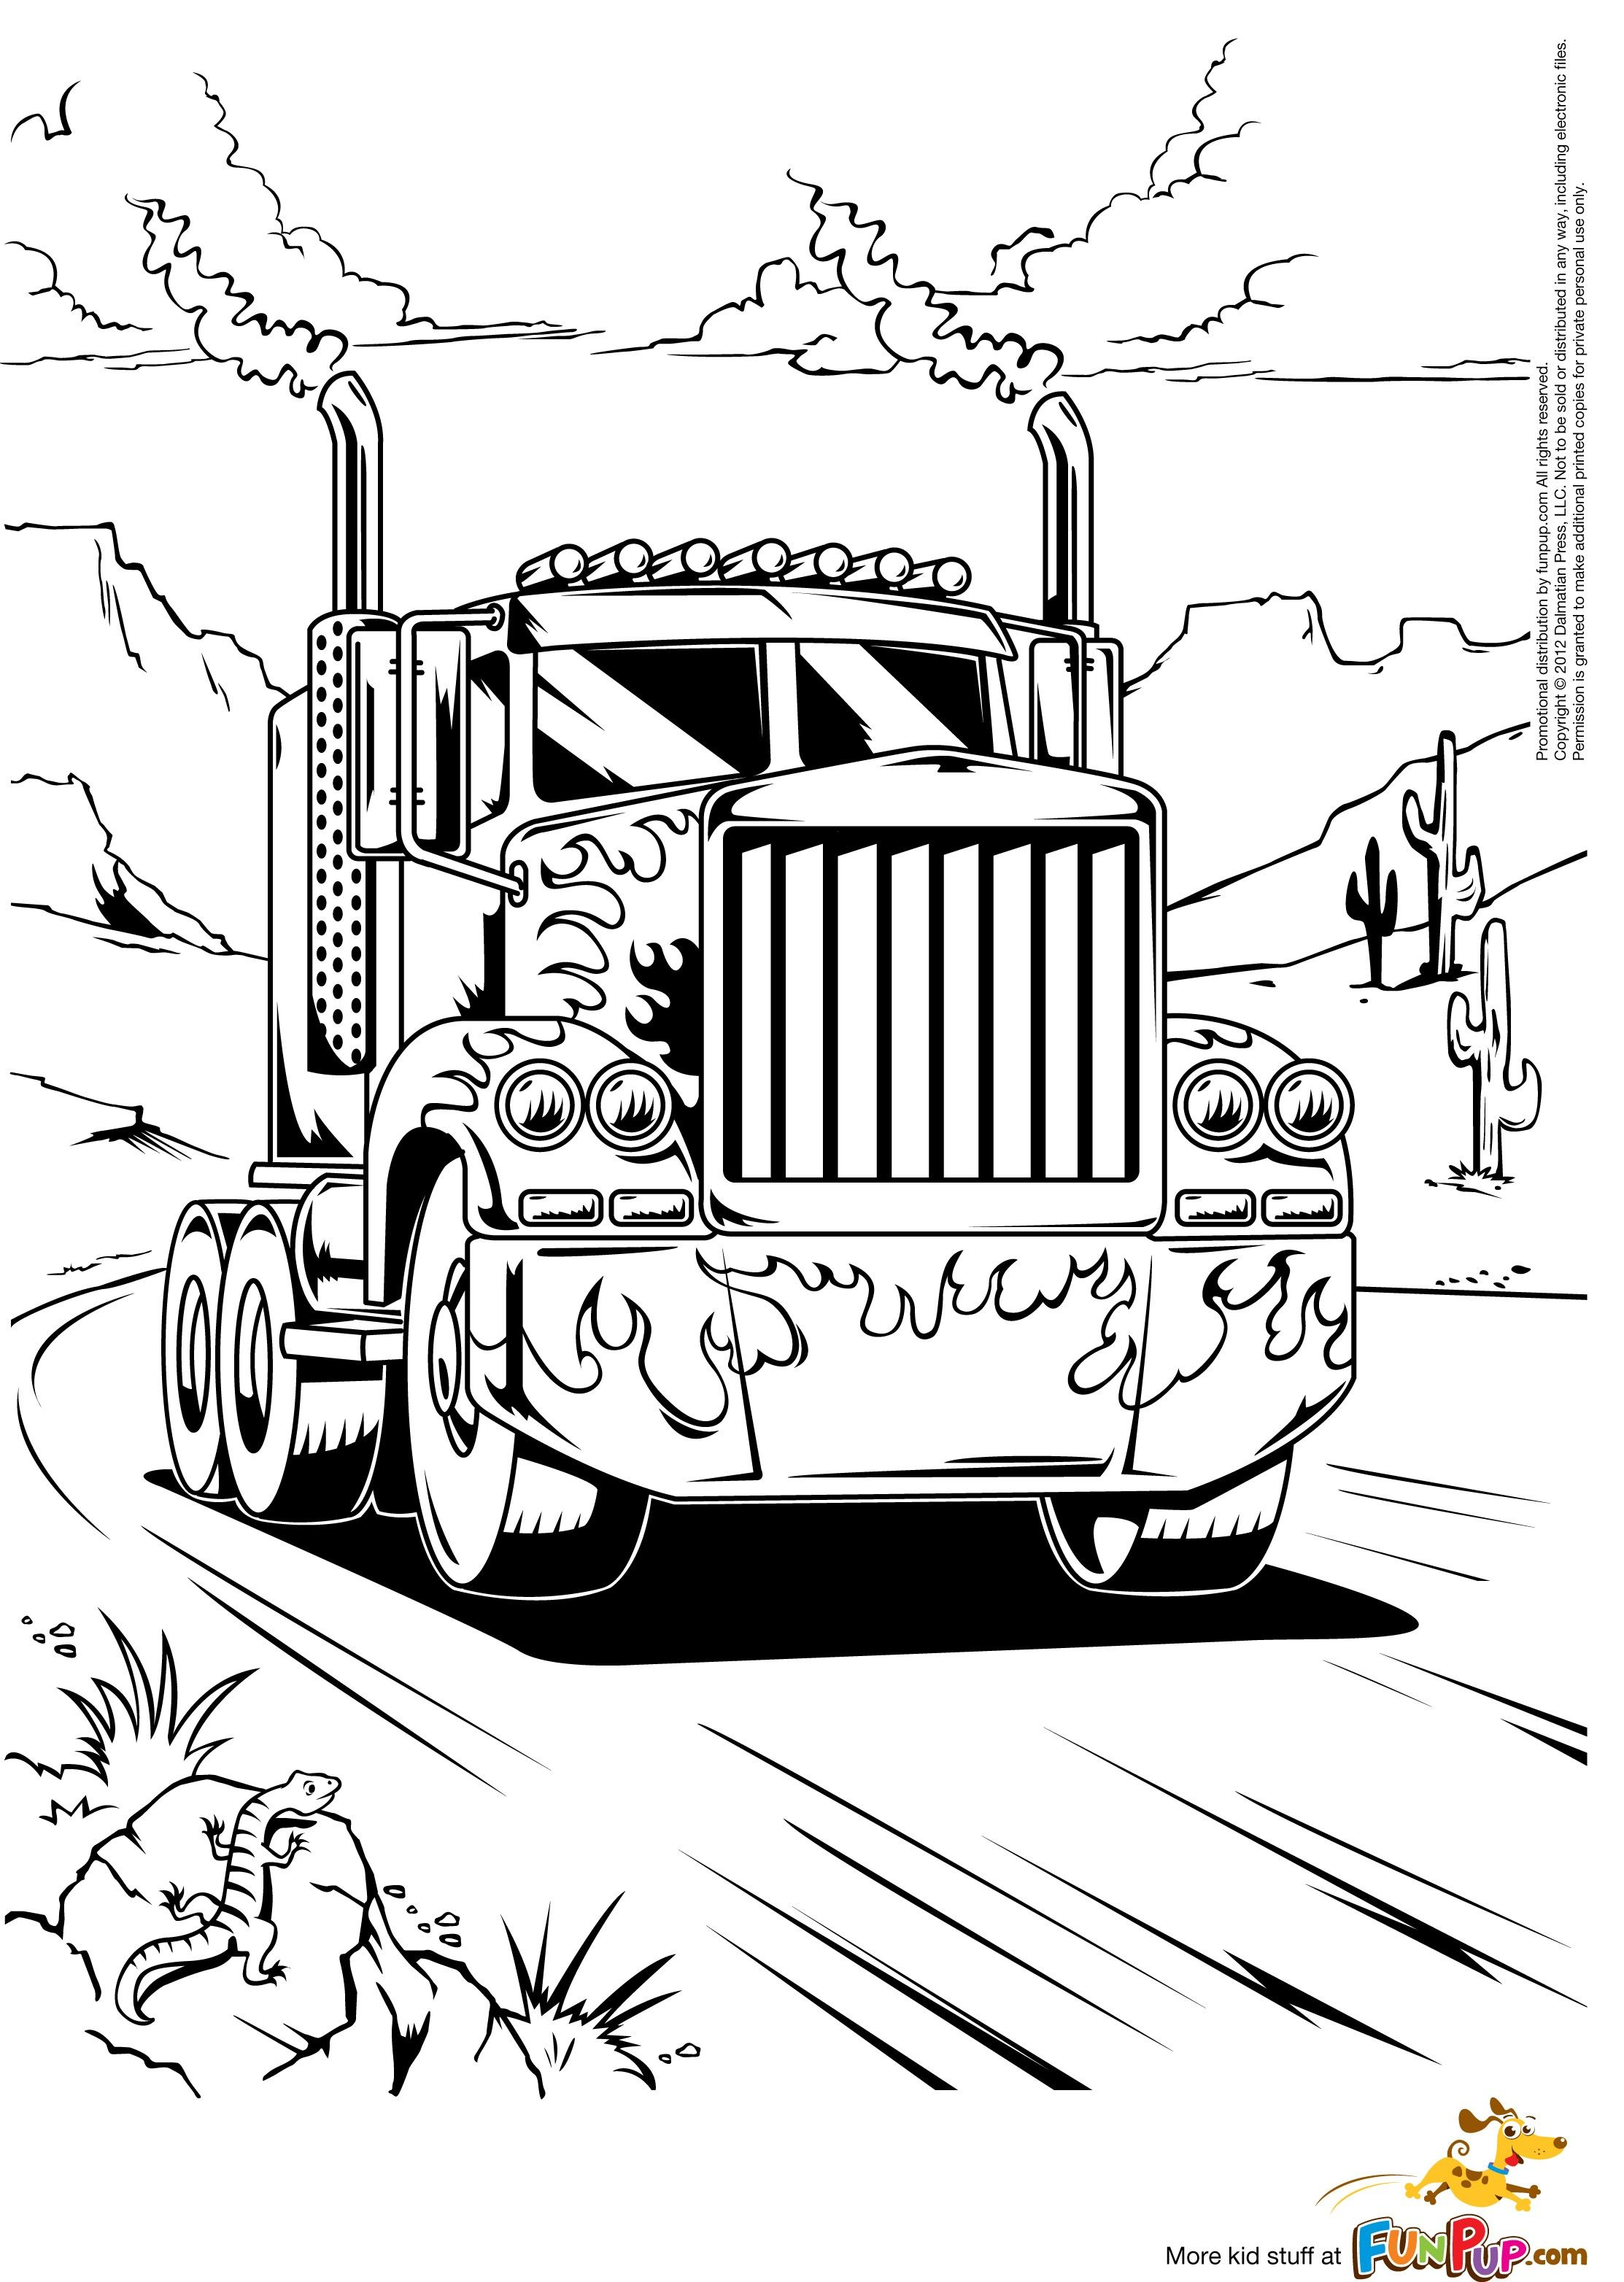 Truck pictures to color Divco, the Milk Truck - Old Car and Truck Pictures